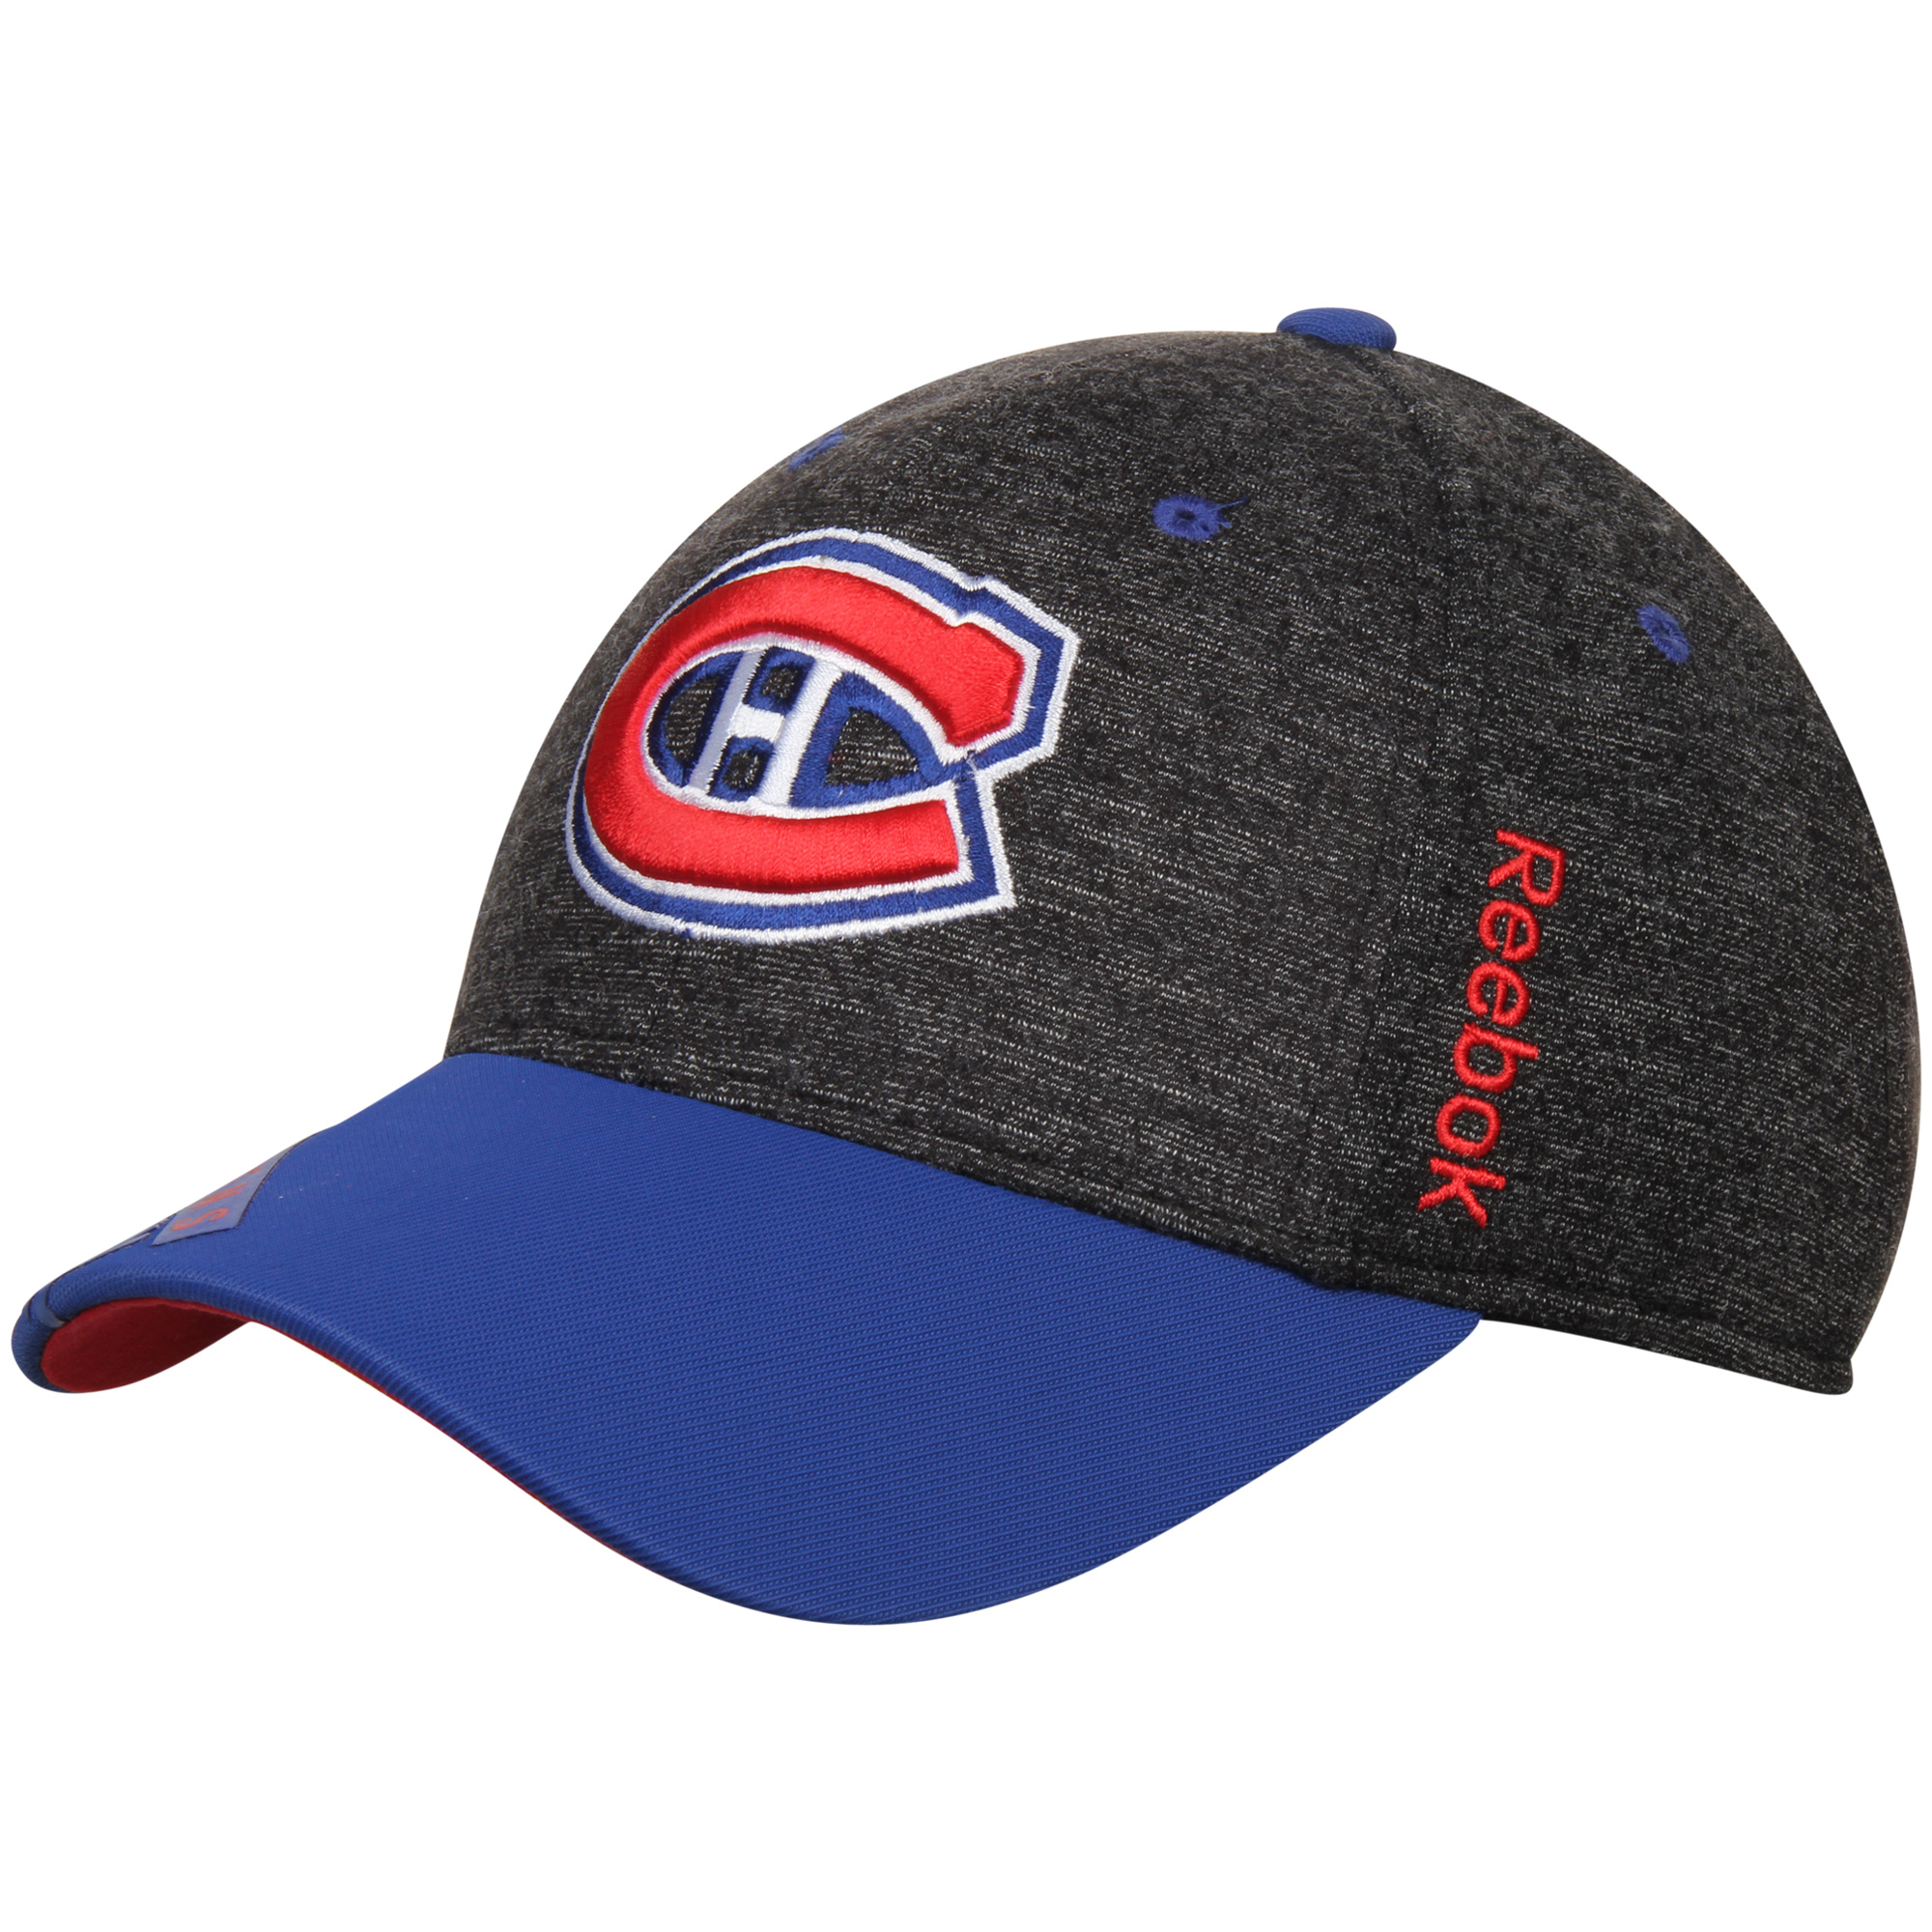 Montreal Canadiens Reebok Two-Tone Structured Flex Hat - Charcoal/Royal